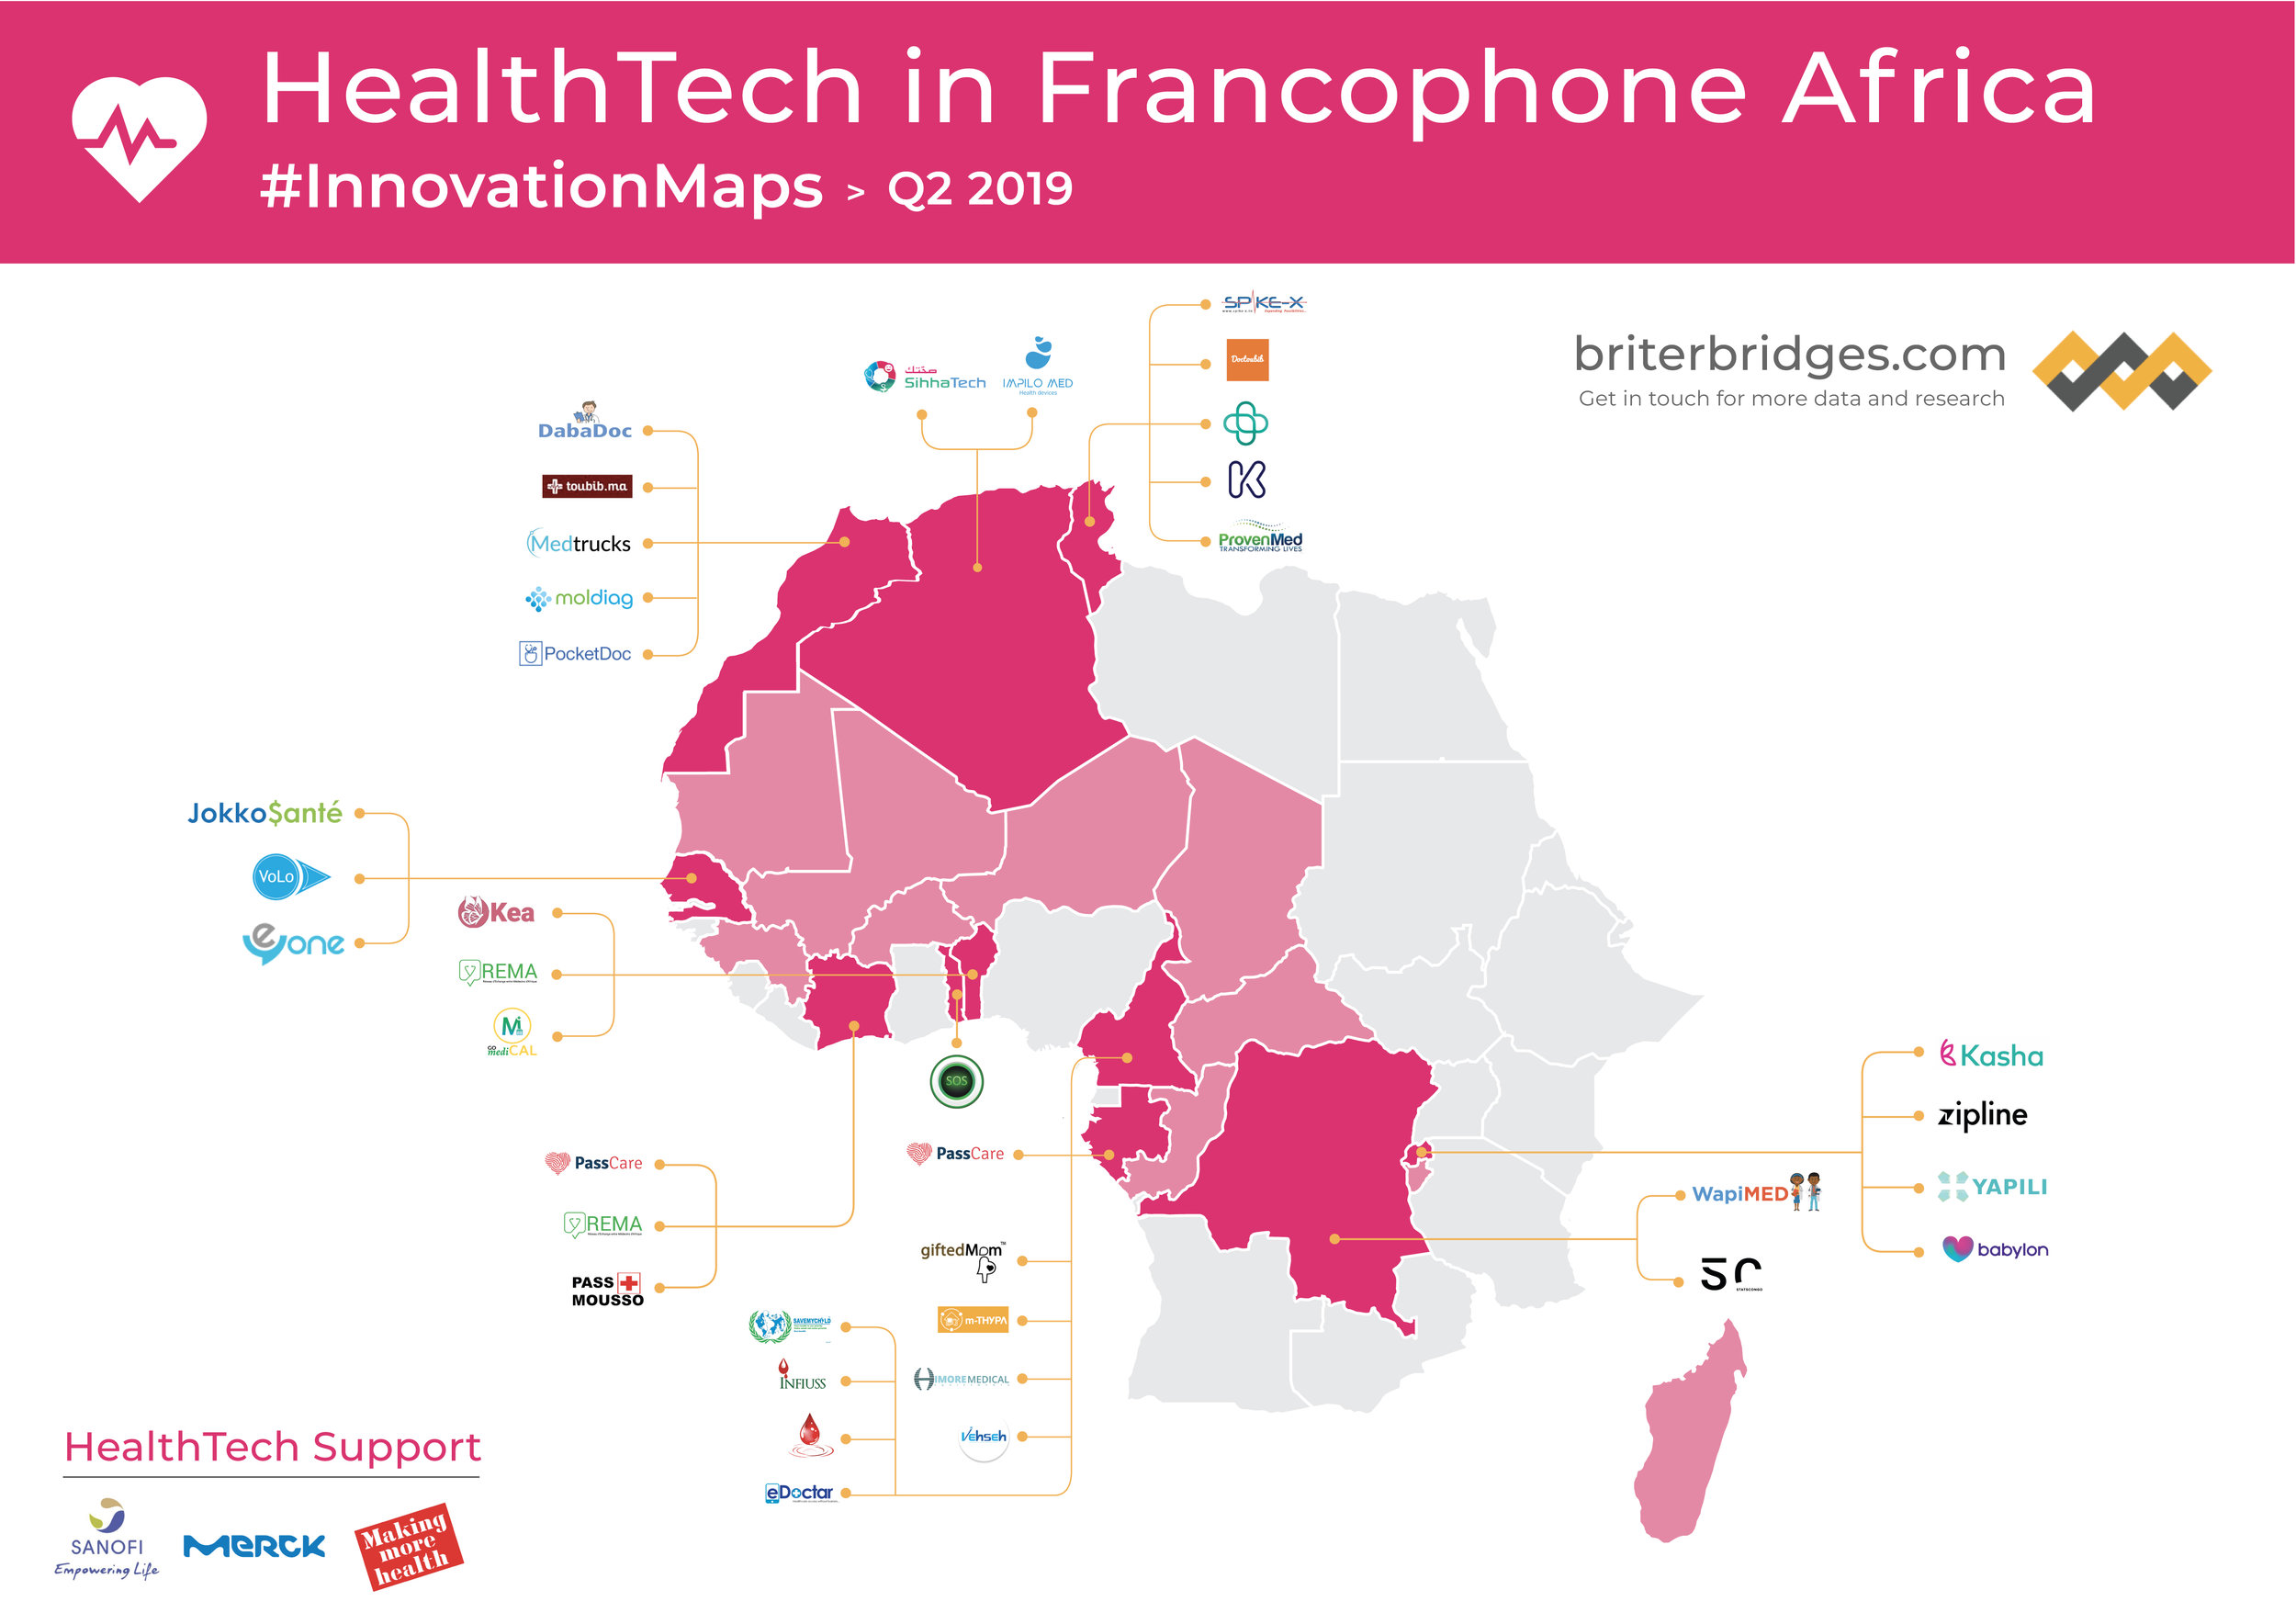 HealthTech in Francophone Africa